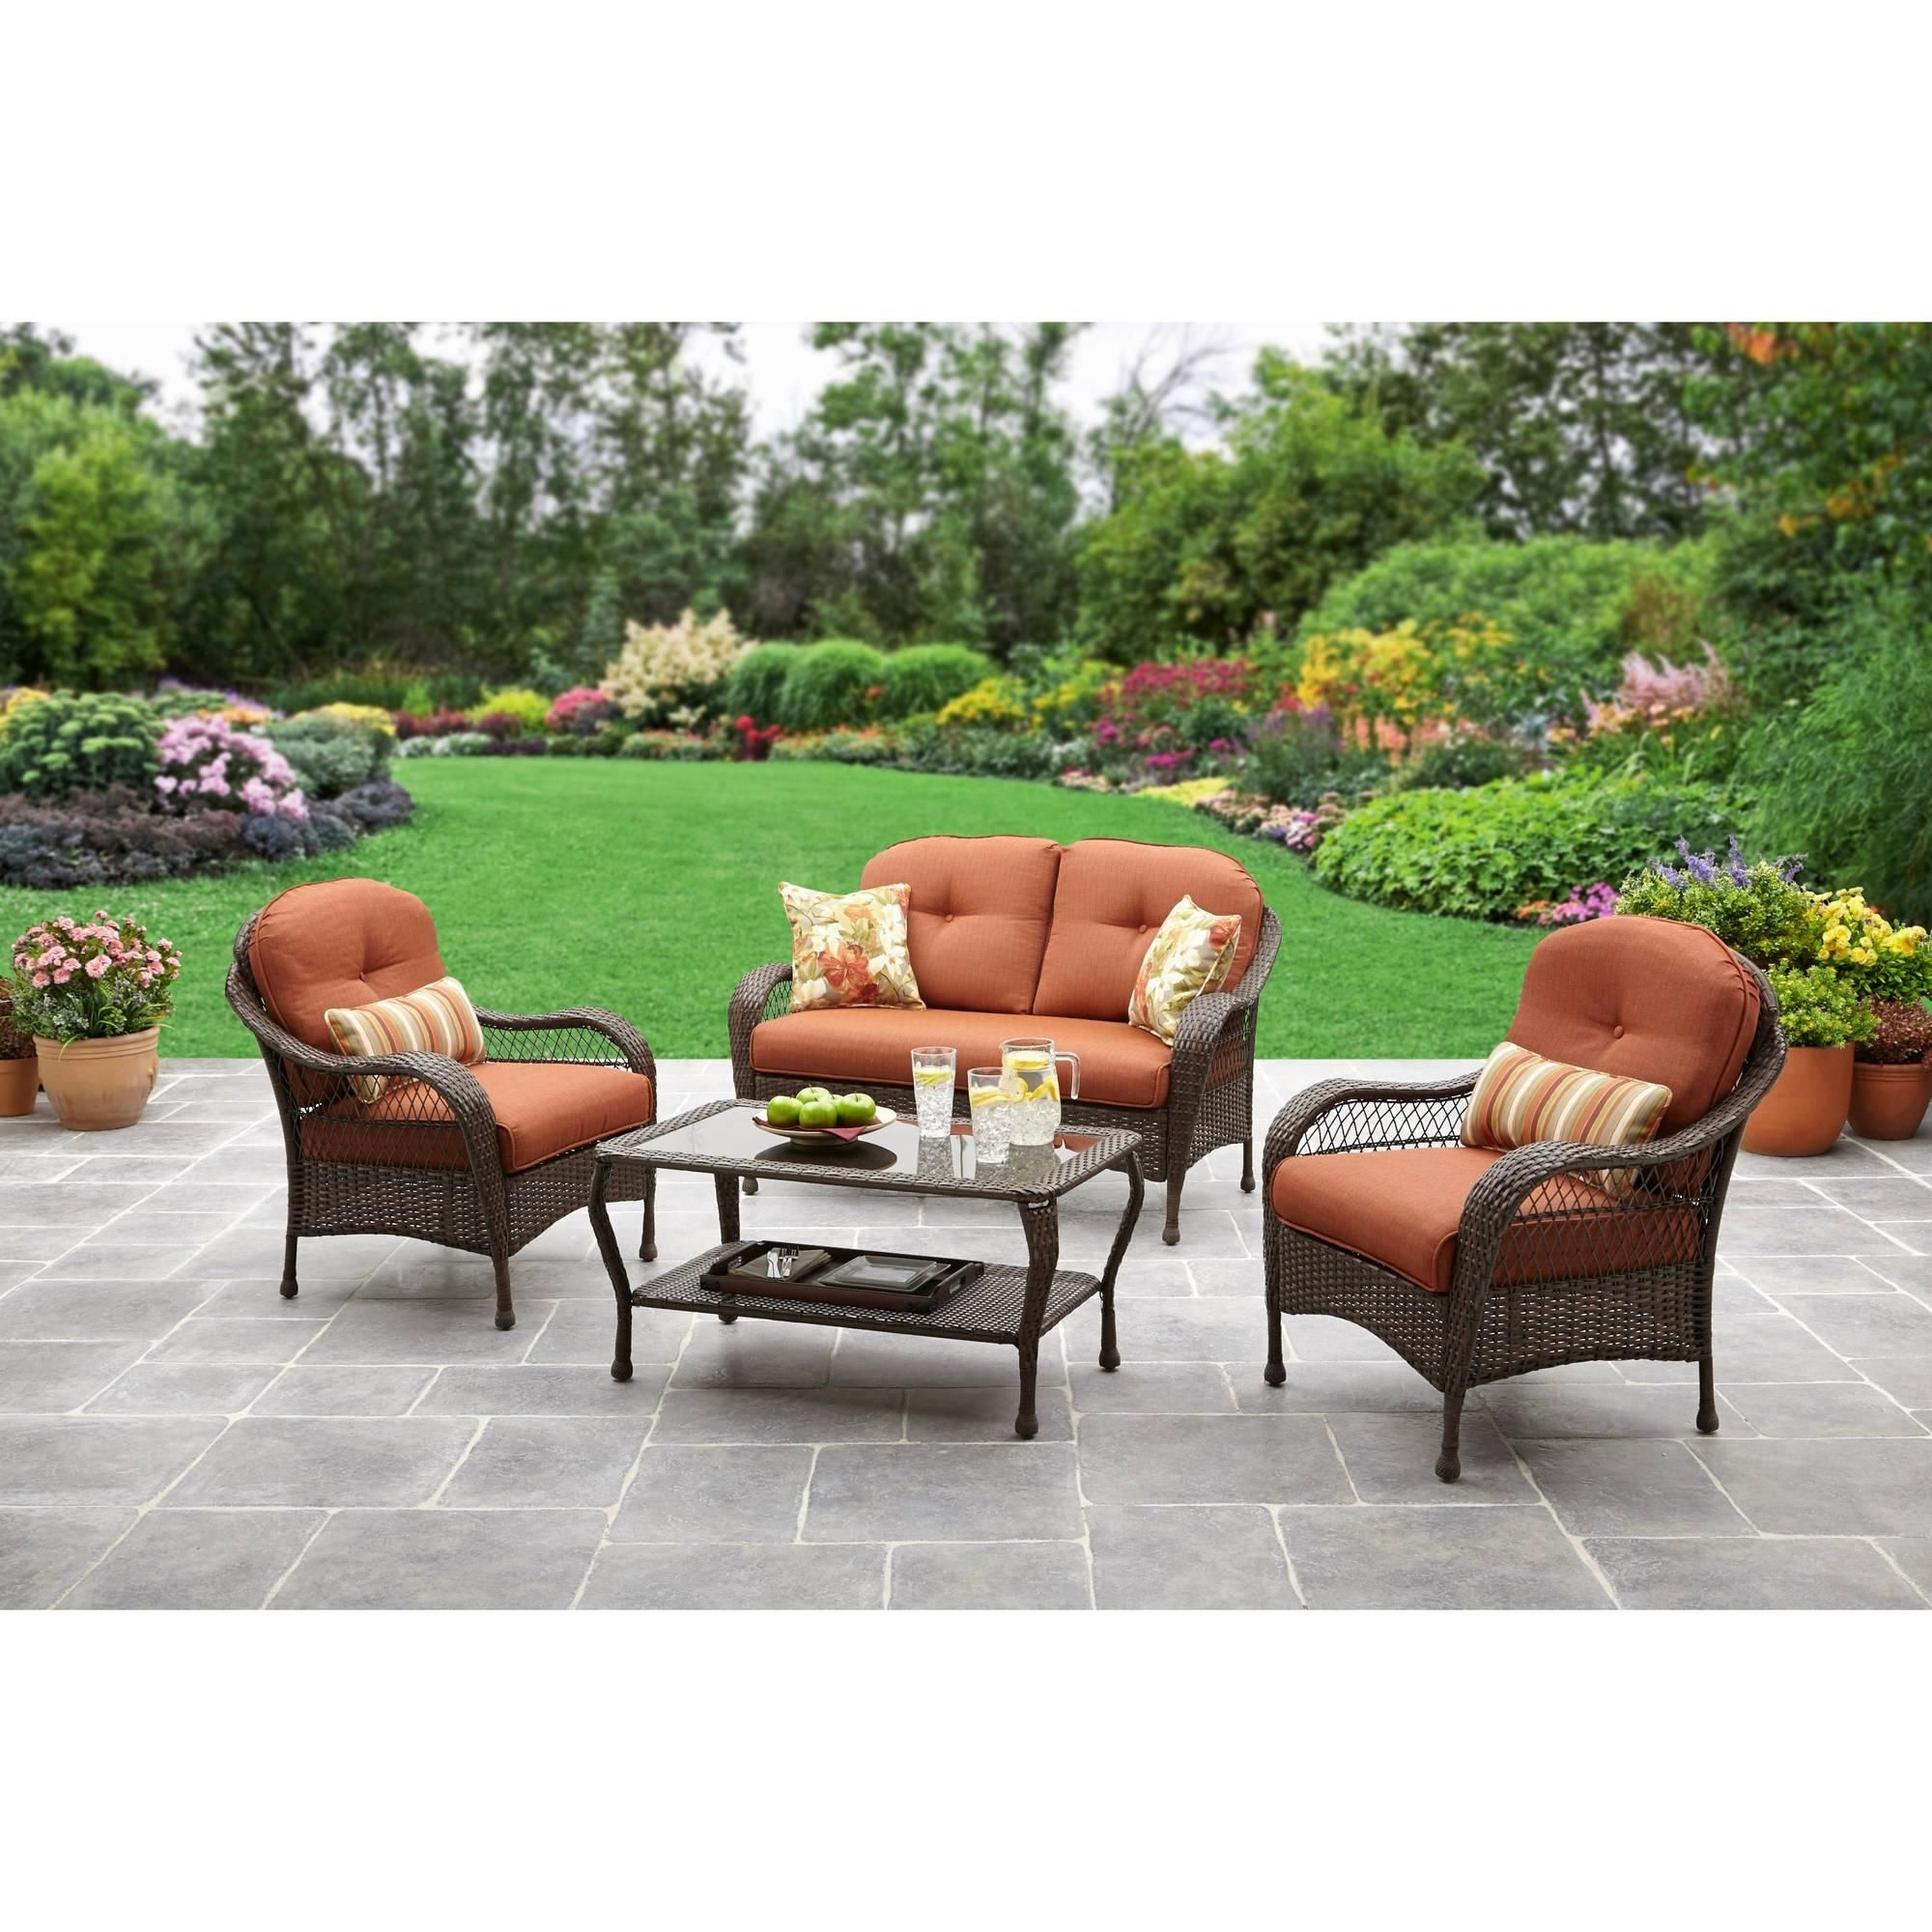 Walmart Patio Furniture Conversation Sets Inside Most Popular Replacement Cushions For Outdoor Furniture Walmart – Best Spray (View 10 of 20)